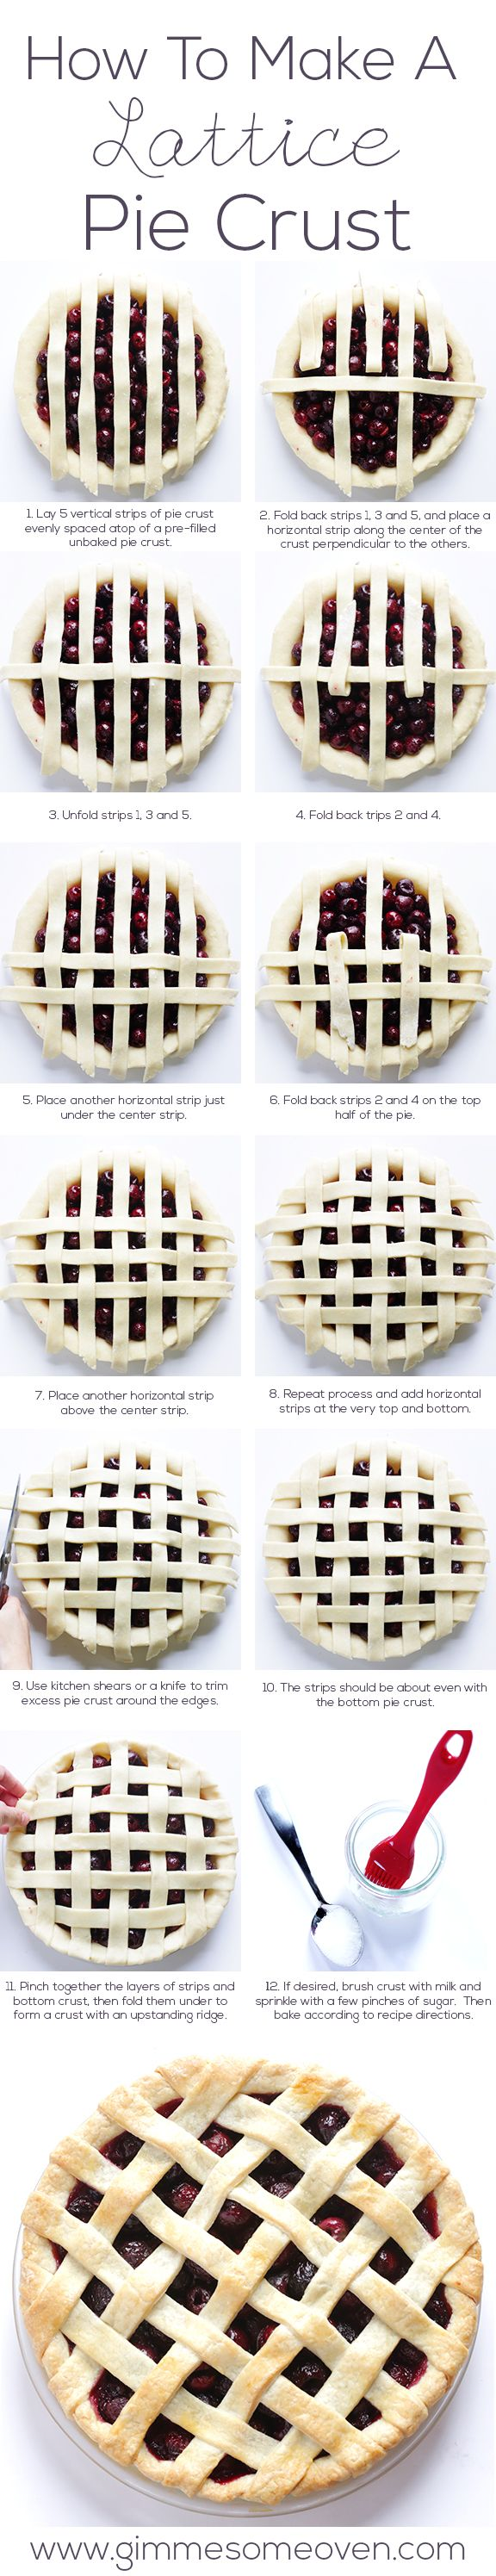 How To Make A Lattice Pie Crust.  Try this classic design with Mr. Wittle's assorted pie fillings in Apple, Blueberry and Strawberry today. Available @CentralMarket @ManyKitchens @RoyPopeGrocery